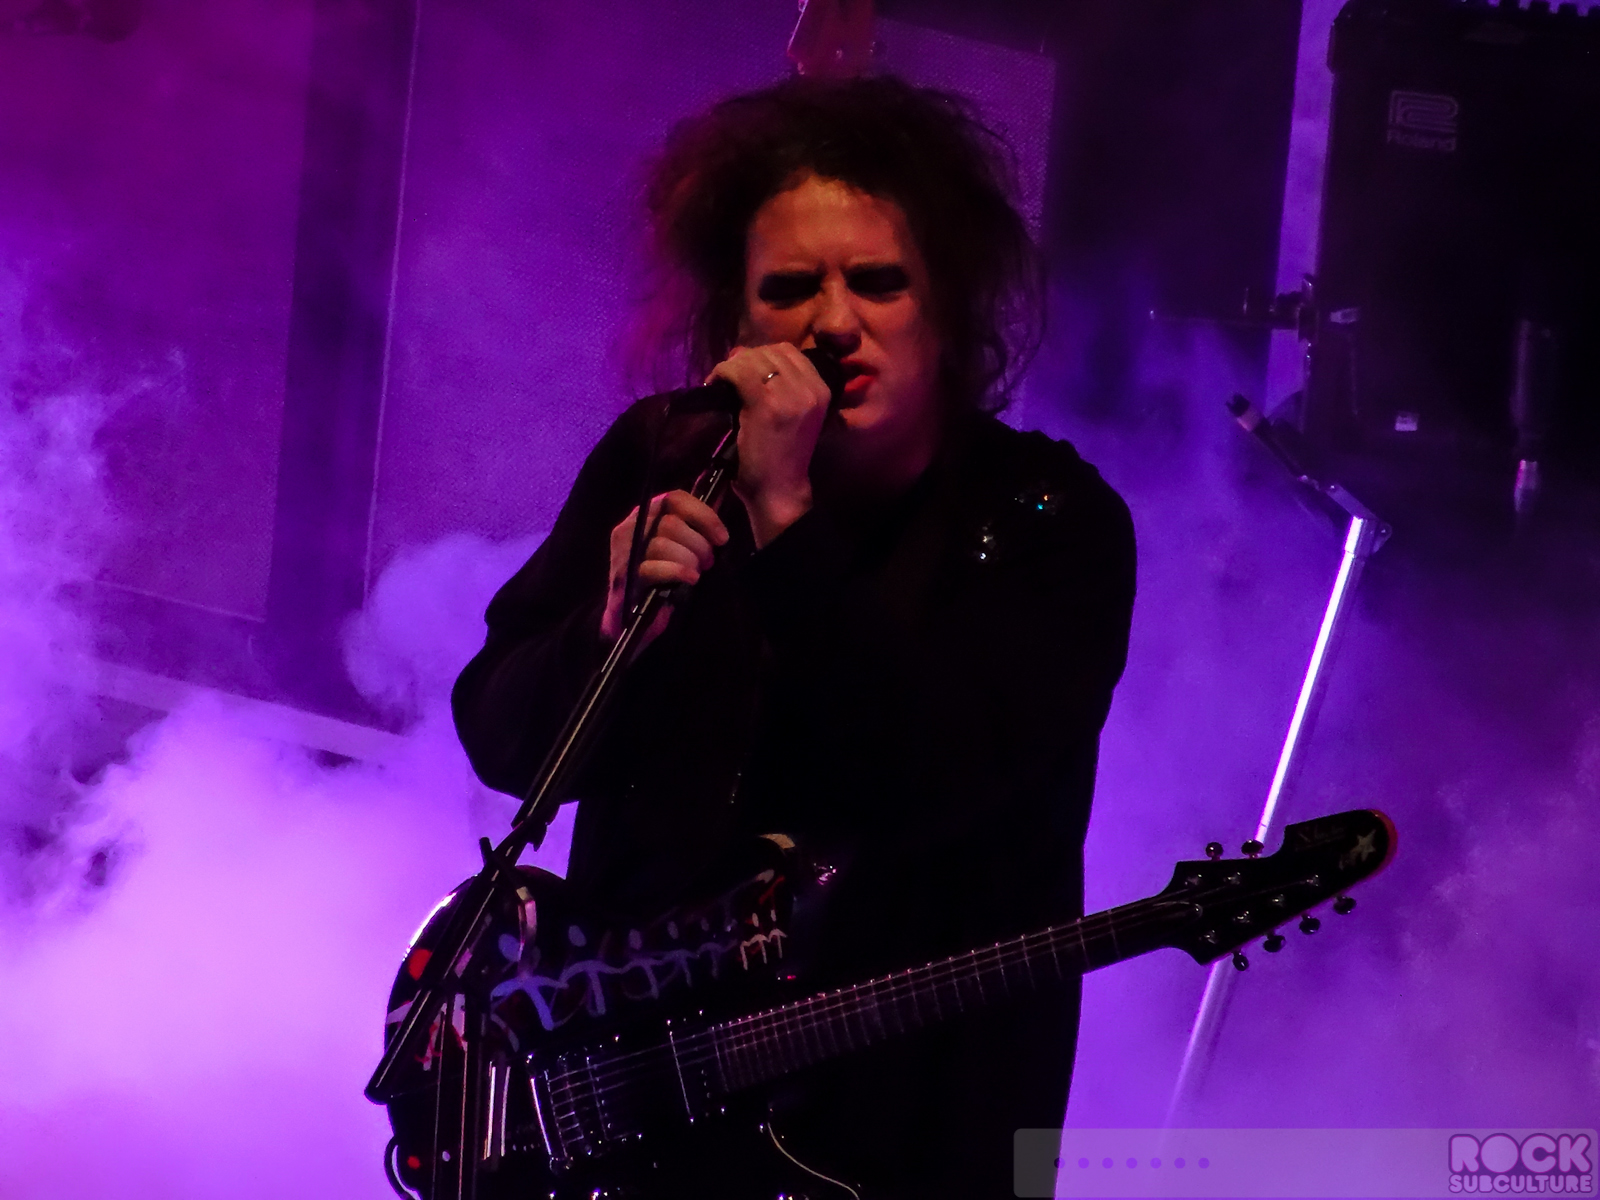 The Cure (for Teenage Cancer Trust) at Royal Albert Hall | London